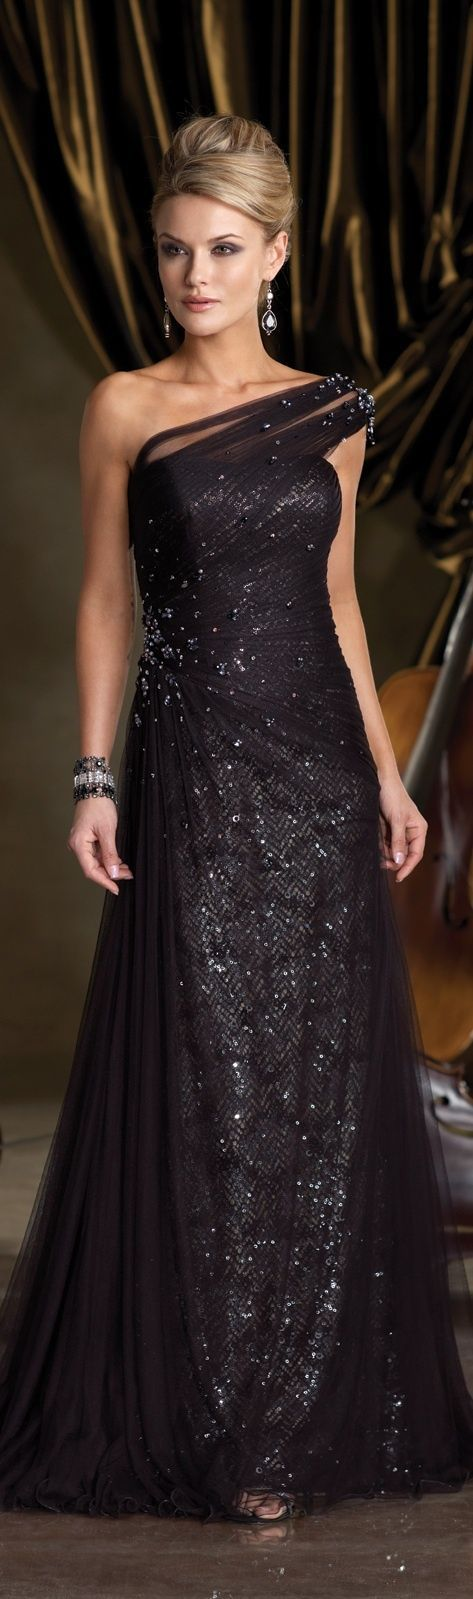 Evening Dresses for Black Tie Fundraiser